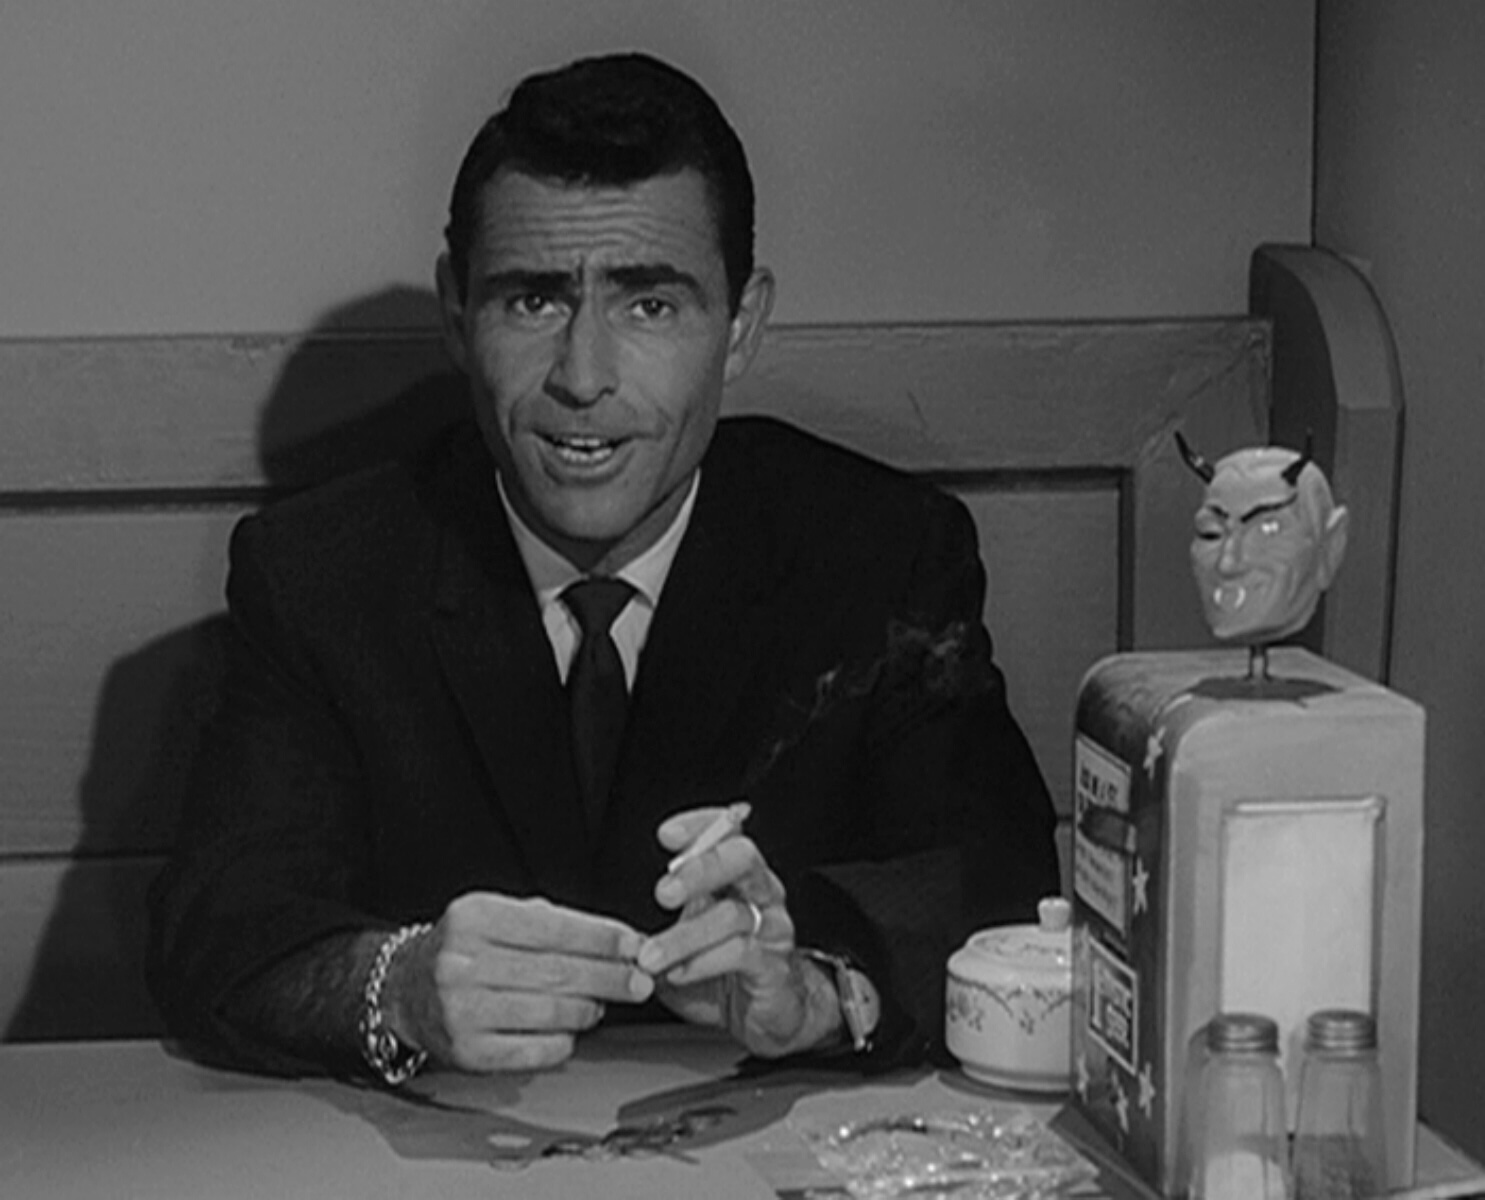 Rod Serling at a diner table.